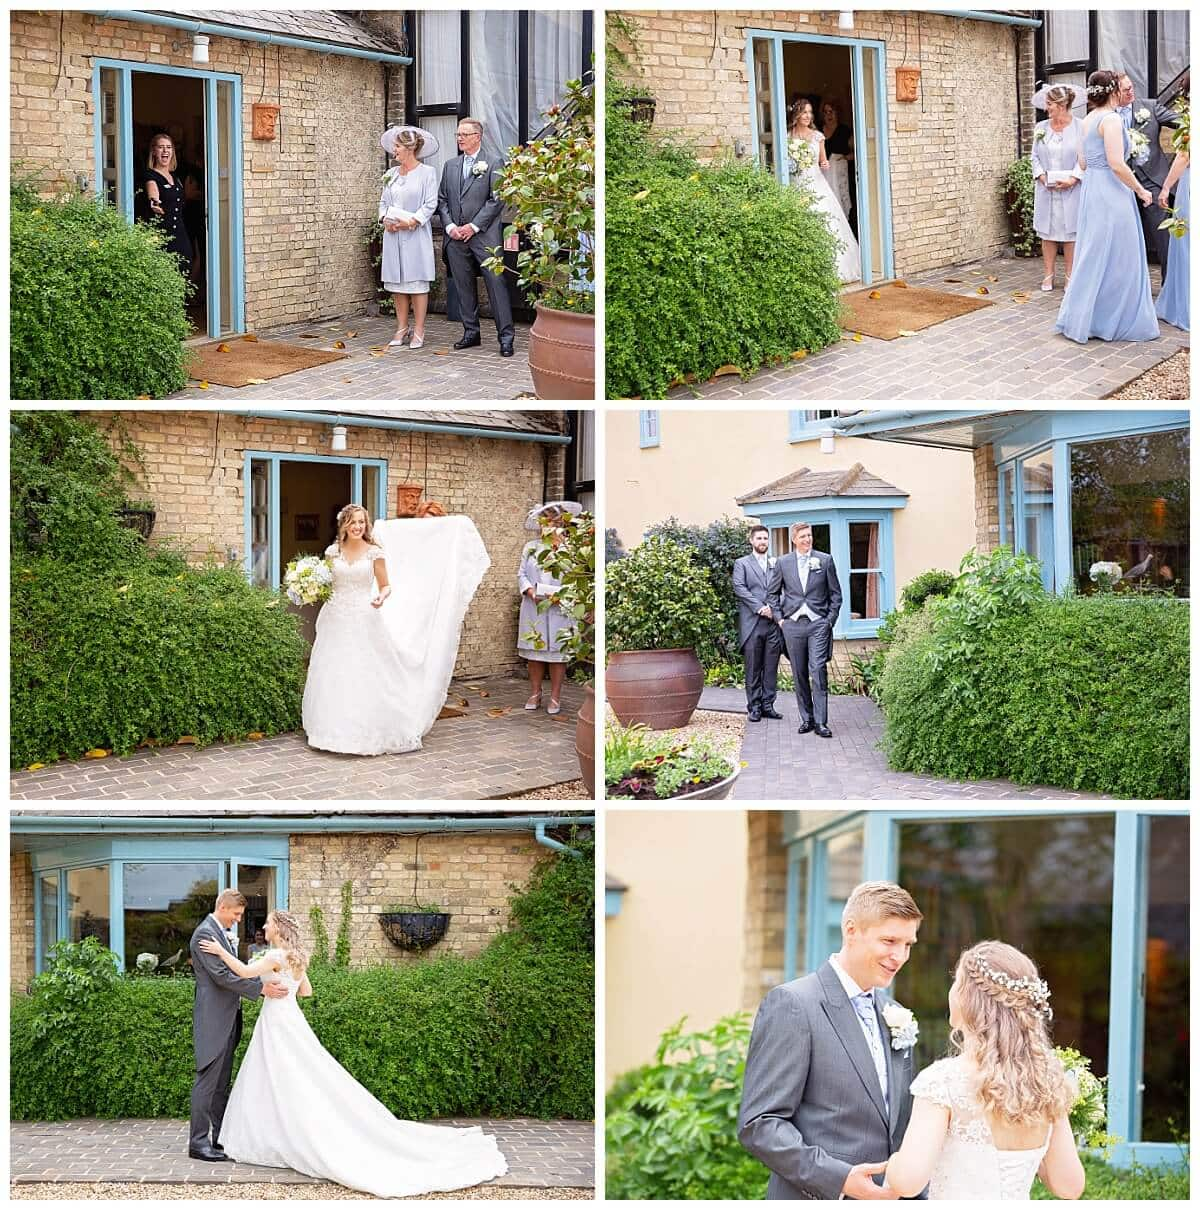 First Look between Bride and Groom at South Farm